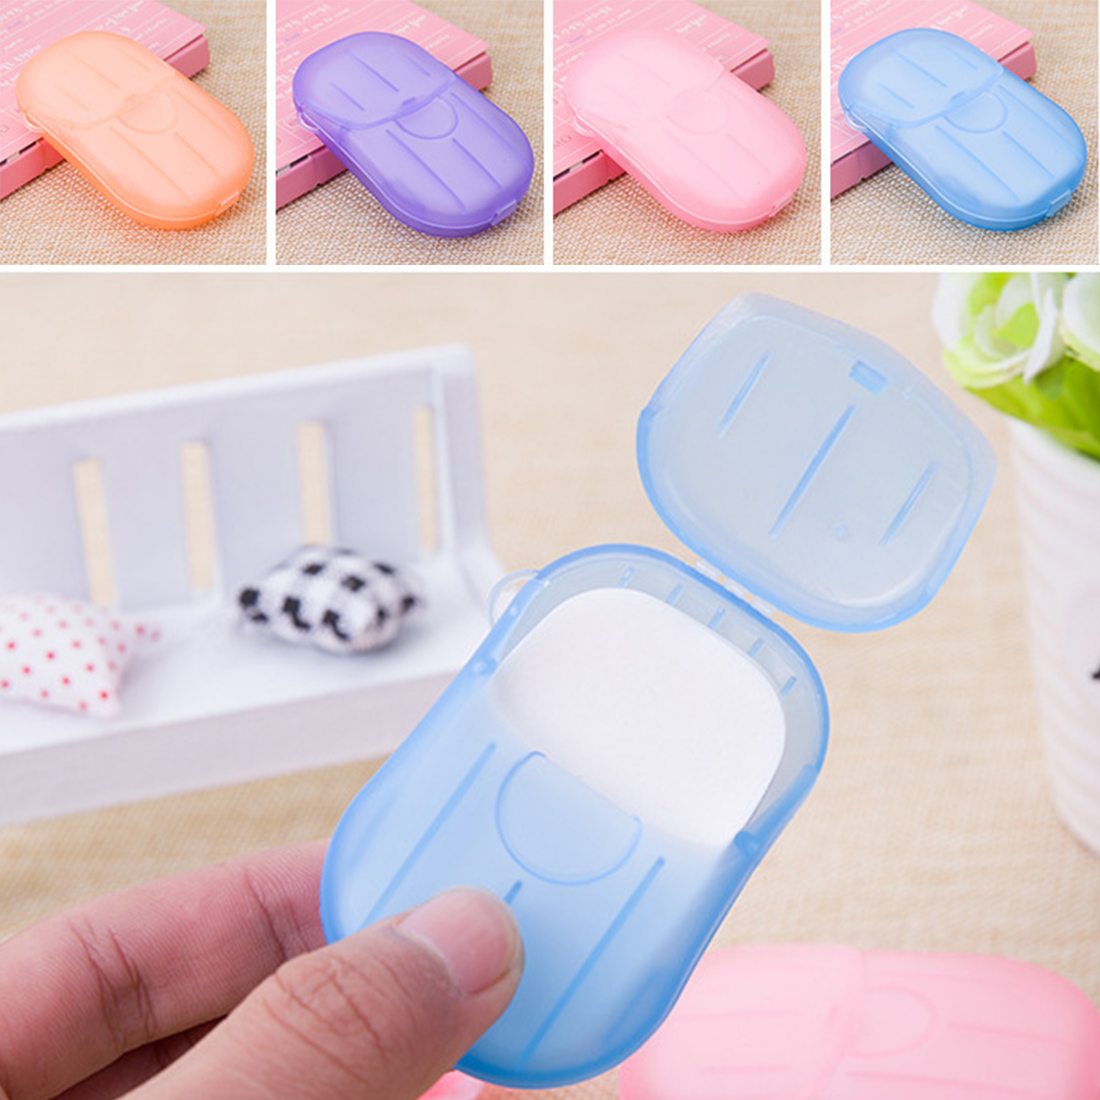 Hot Portable Travel Outdoor Hand Washing Cleaning Scented Slice Sheets Mini Paper Soap Random 20pcs Disposable Boxed Soap Paper